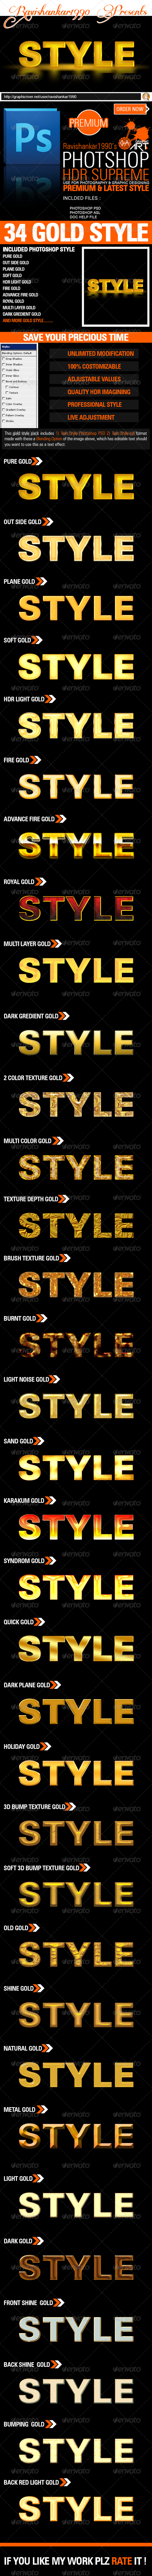 GraphicRiver Gold Text Layer Style 5604201